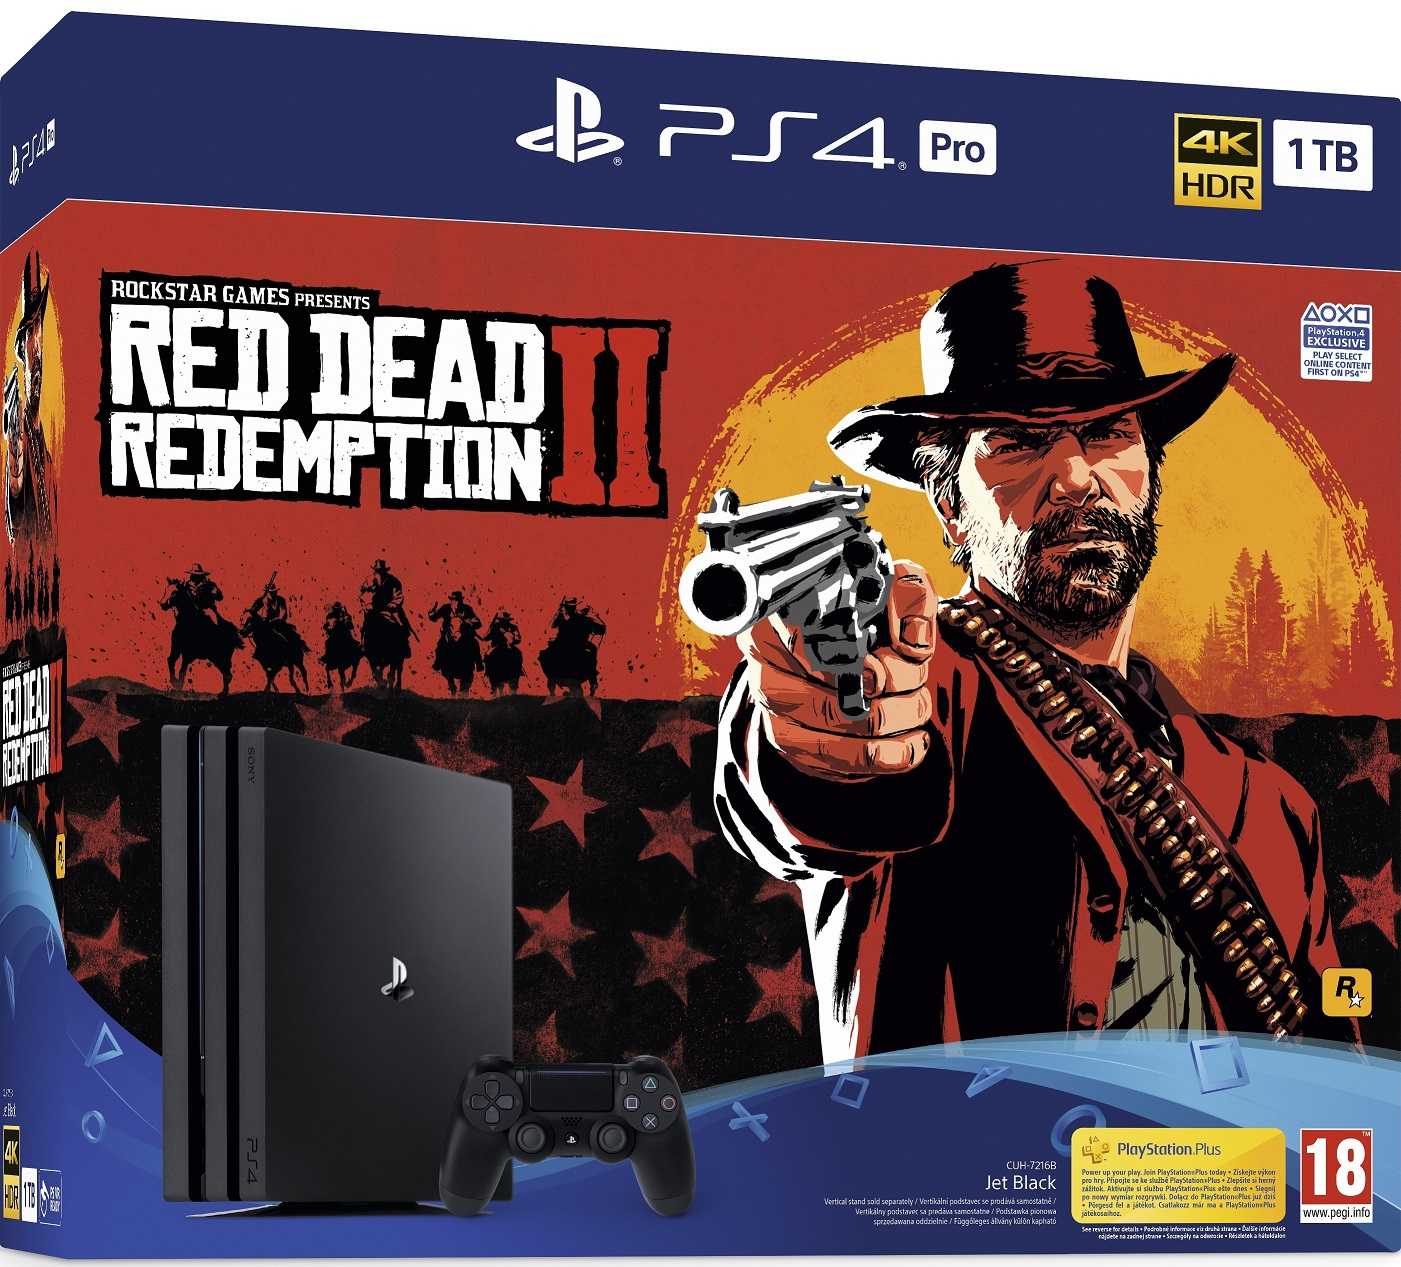 Sony PlayStation 4 Pro 1TB (PS4 Pro) + Red Dead Redemption 2